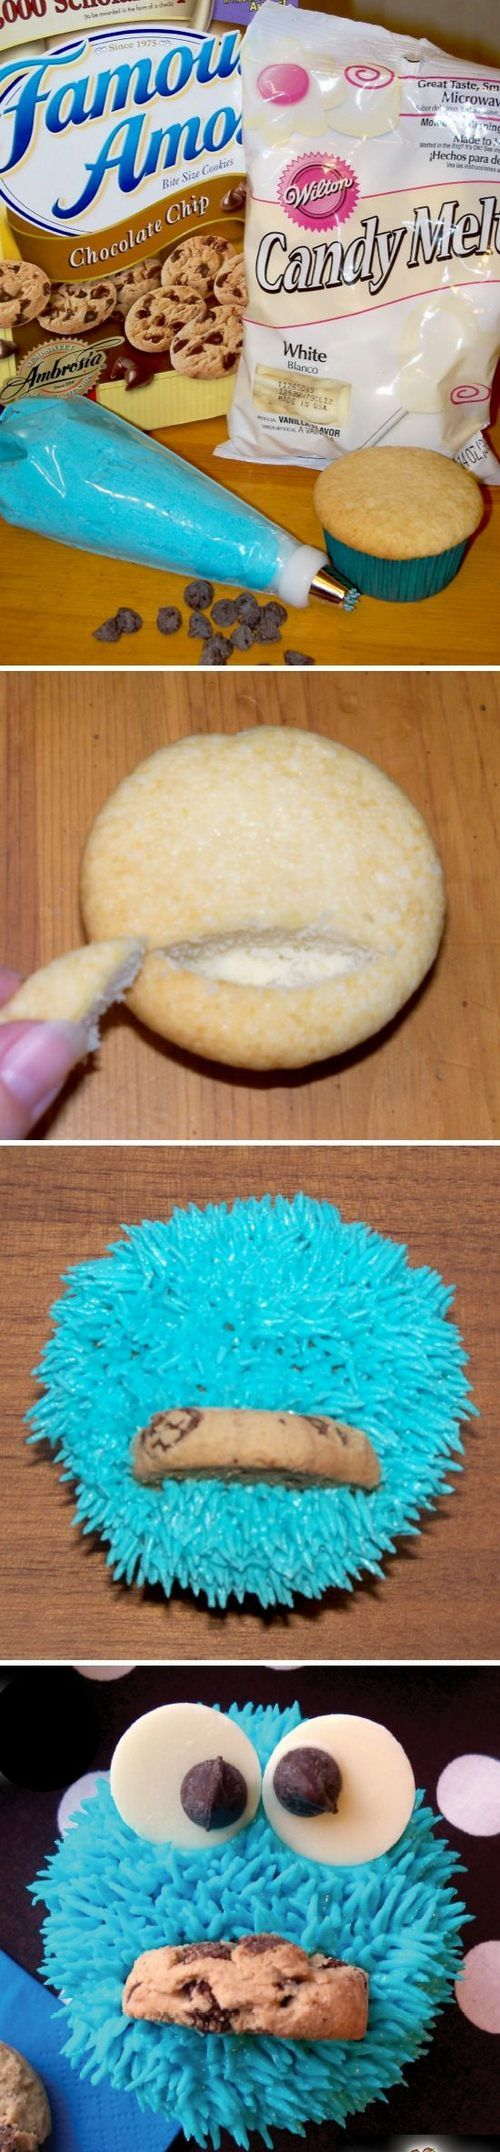 Cookie Monster Cupcakes - such a cute idea! Now if only I could get my kids liking Sesame Street ;-)